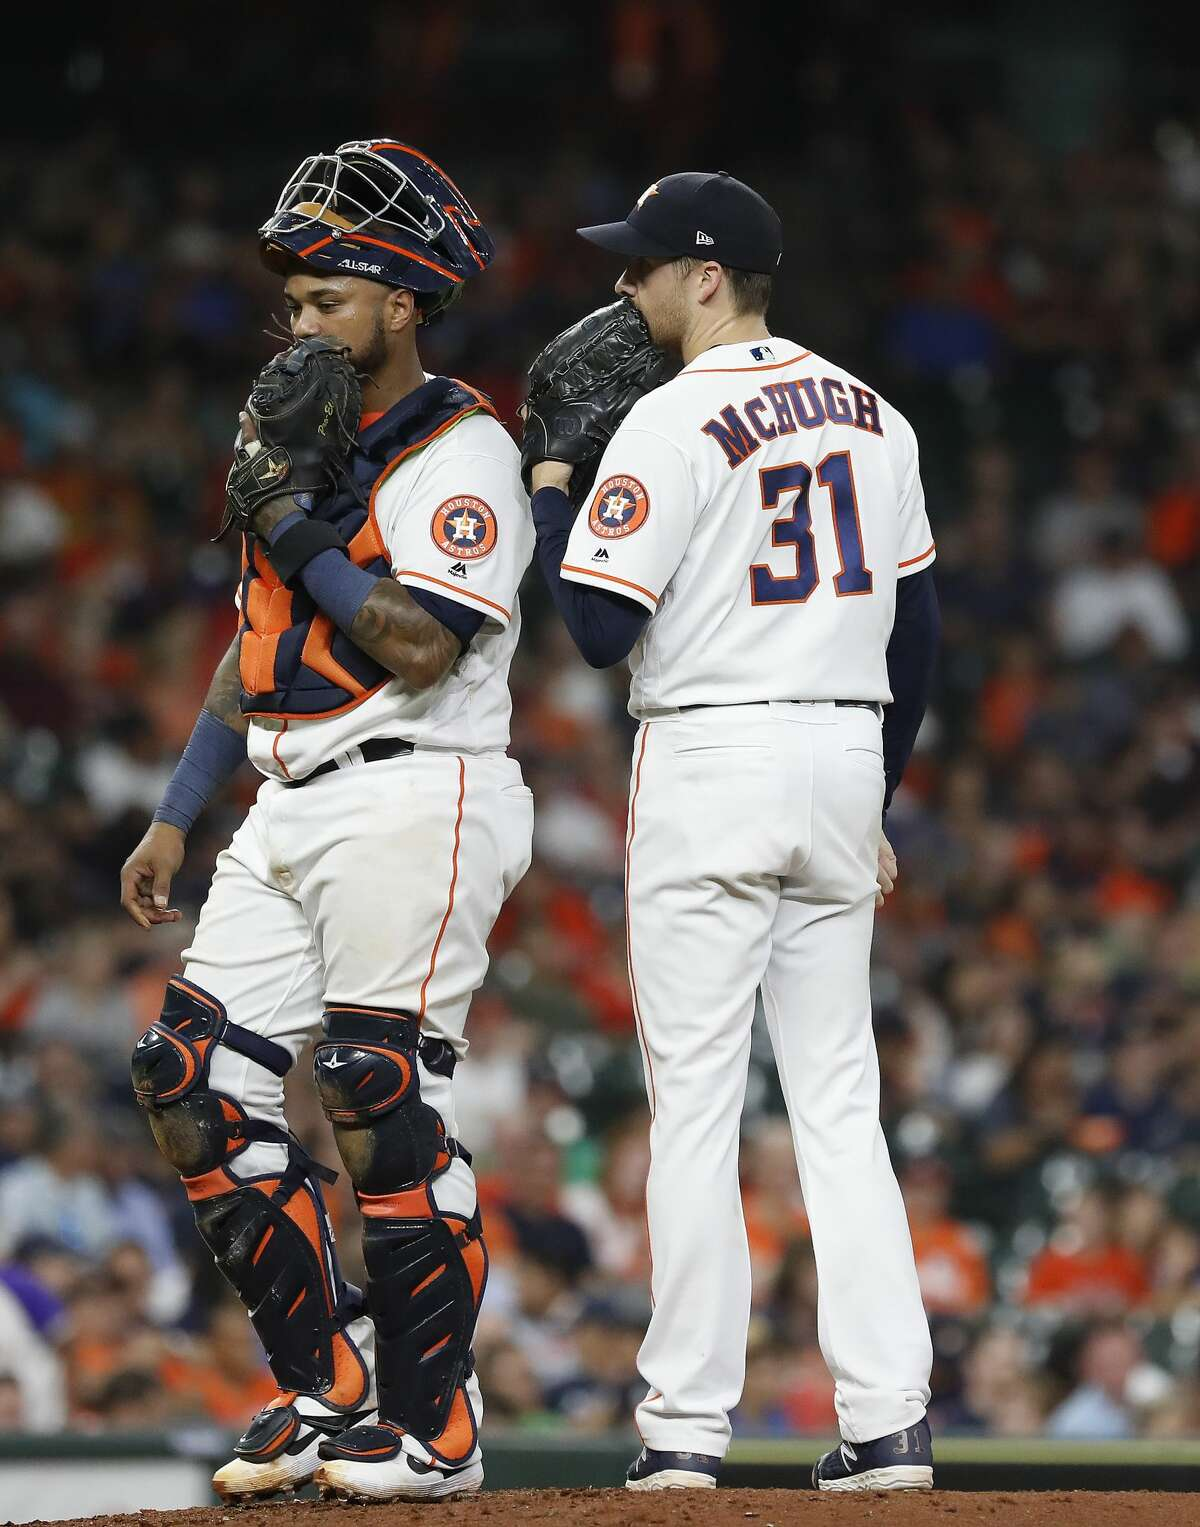 Houston Astros relief pitcher Collin McHugh (31) chats with catcher Martin Maldonado (12) during the sixth inning of an MLB game at Minute Maid Park, Tuesday, August 20, 2019.